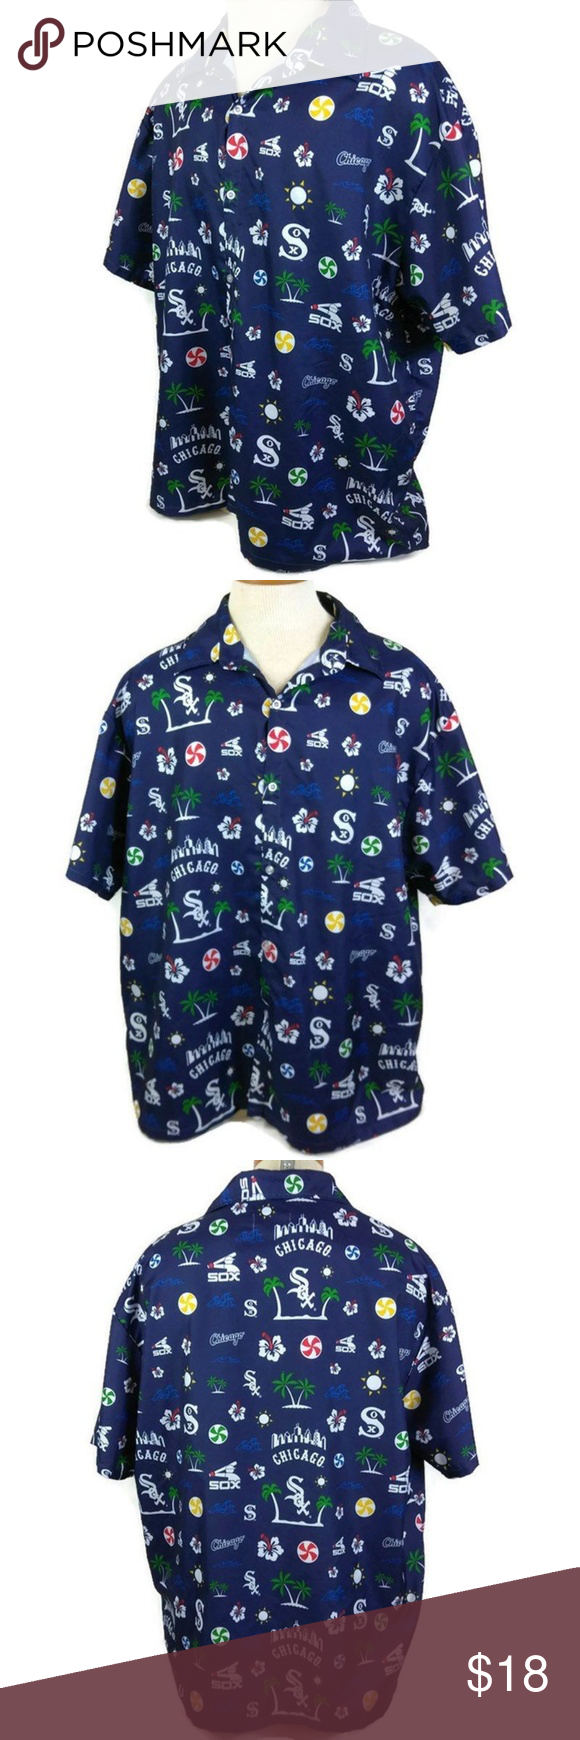 c17b2fbc Chicago White Sox Hawaiian Shirt You are buying Beggars Pizza Mens Shirt  Size XL Chiccago White